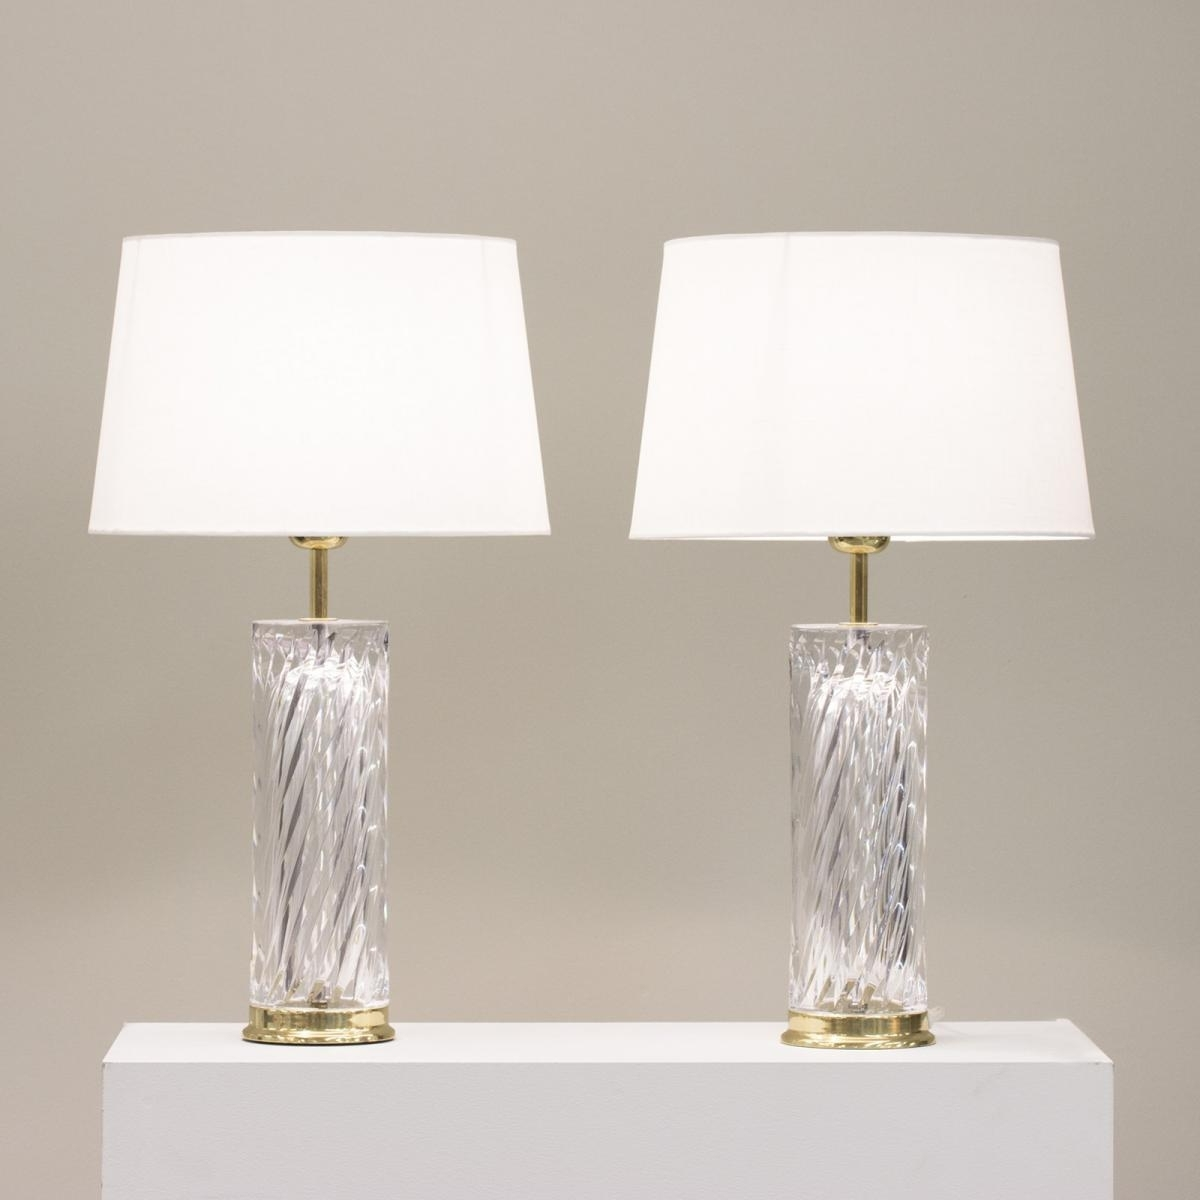 Preferred Set Of 2 Living Room Table Lamps Regarding Top 58 Superb Tall Crystal Table Lamps Floor Lamp On Sale For Living (View 8 of 20)